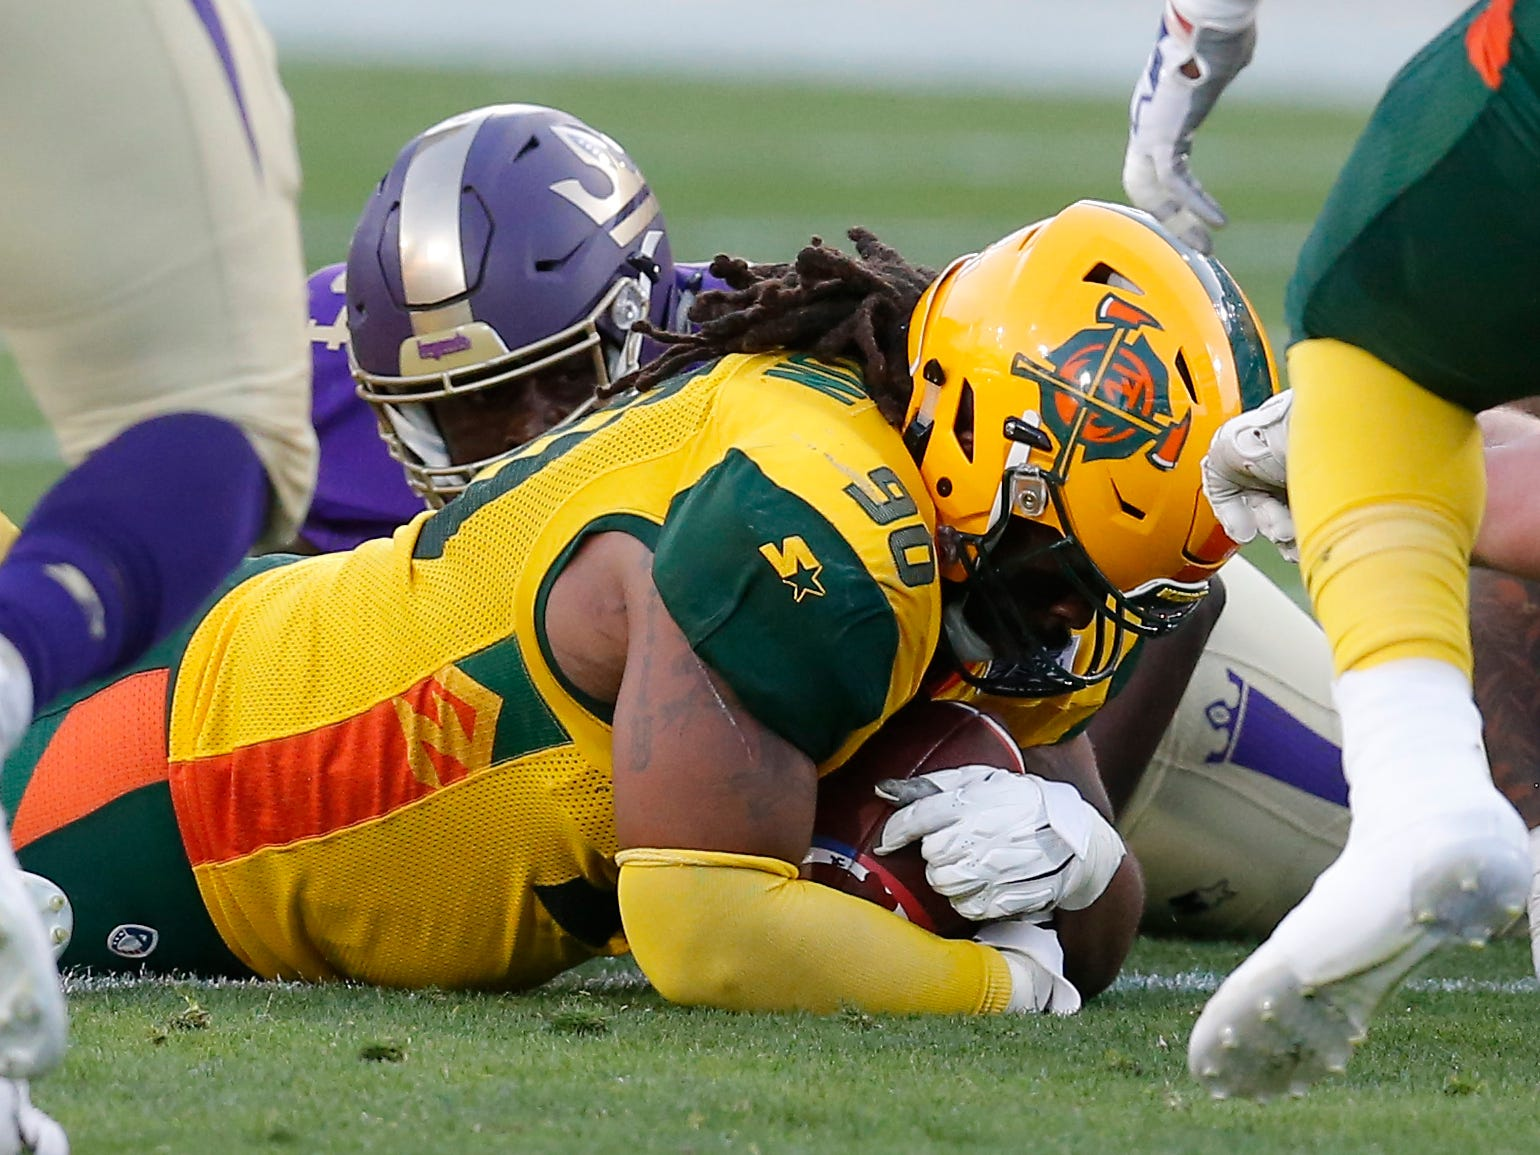 Arizona Hotshots defensive tackle Will Sutton III (90) recovers a fumble in the first half during an AAF football game against the Atlanta Legends, Sunday, March 3, 2019, at Sun Devil Stadium in Phoenix.